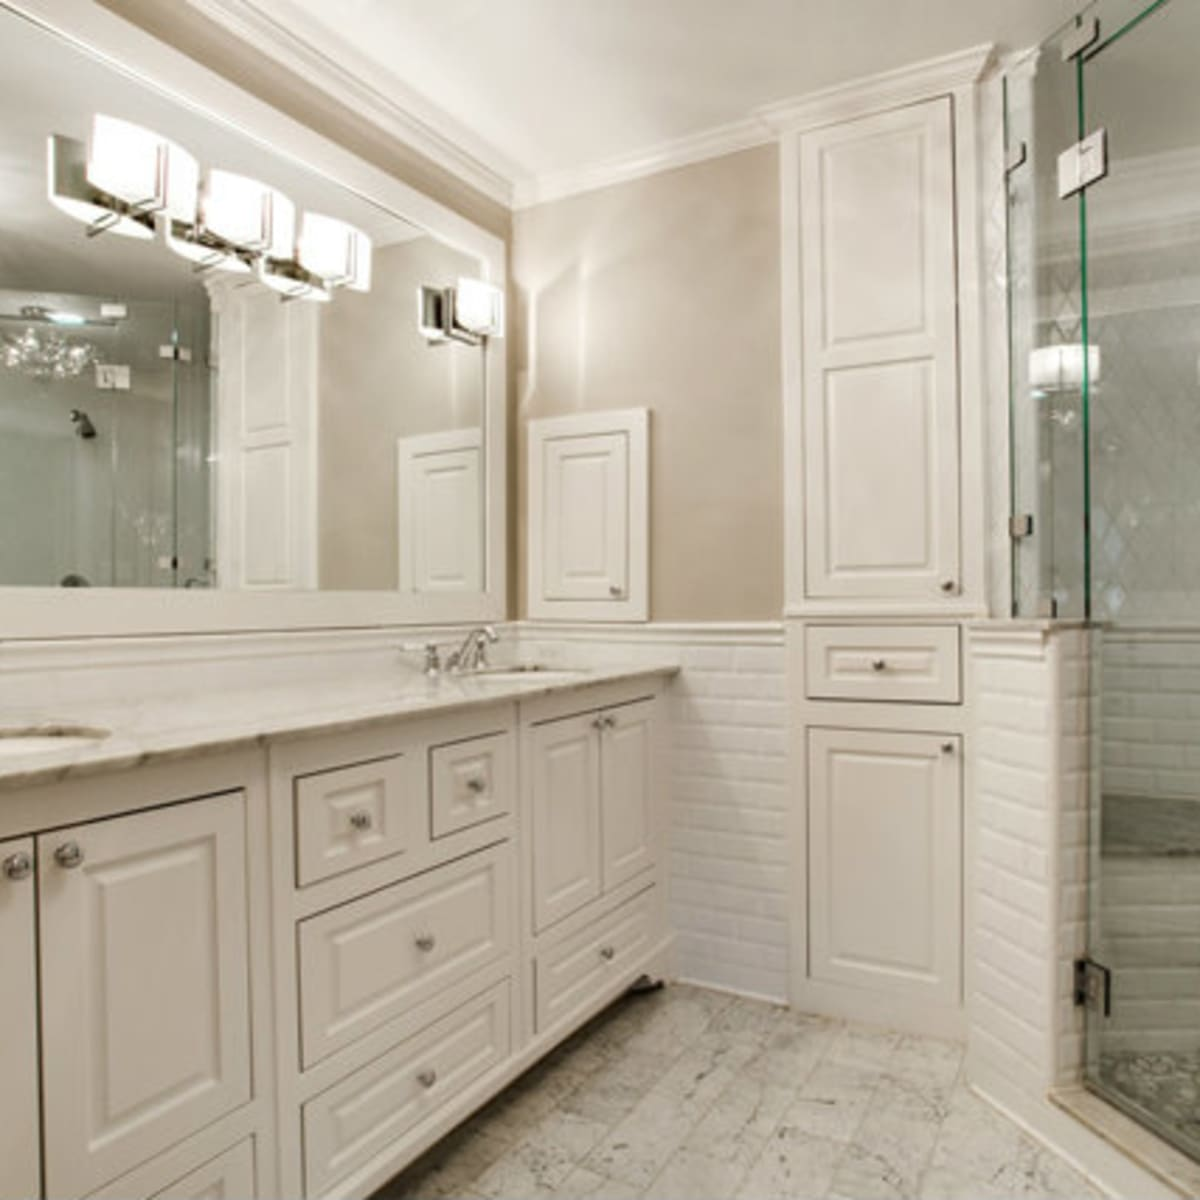 Master bathroom at 811 Monte Vista Dr. in Dallas